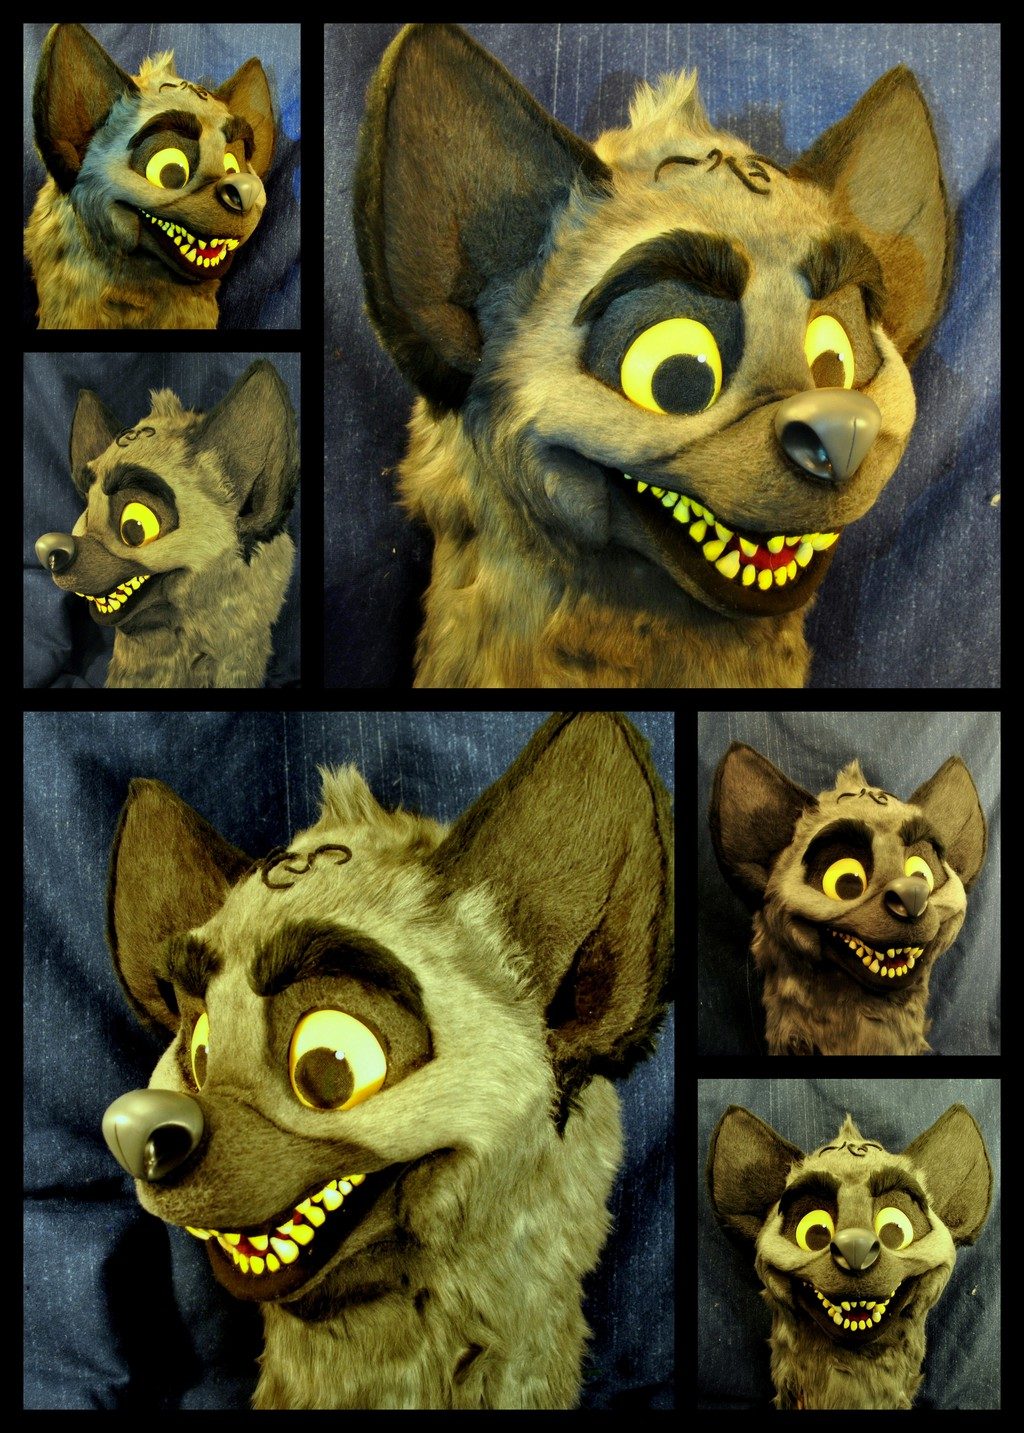 Most recent image: Hyena